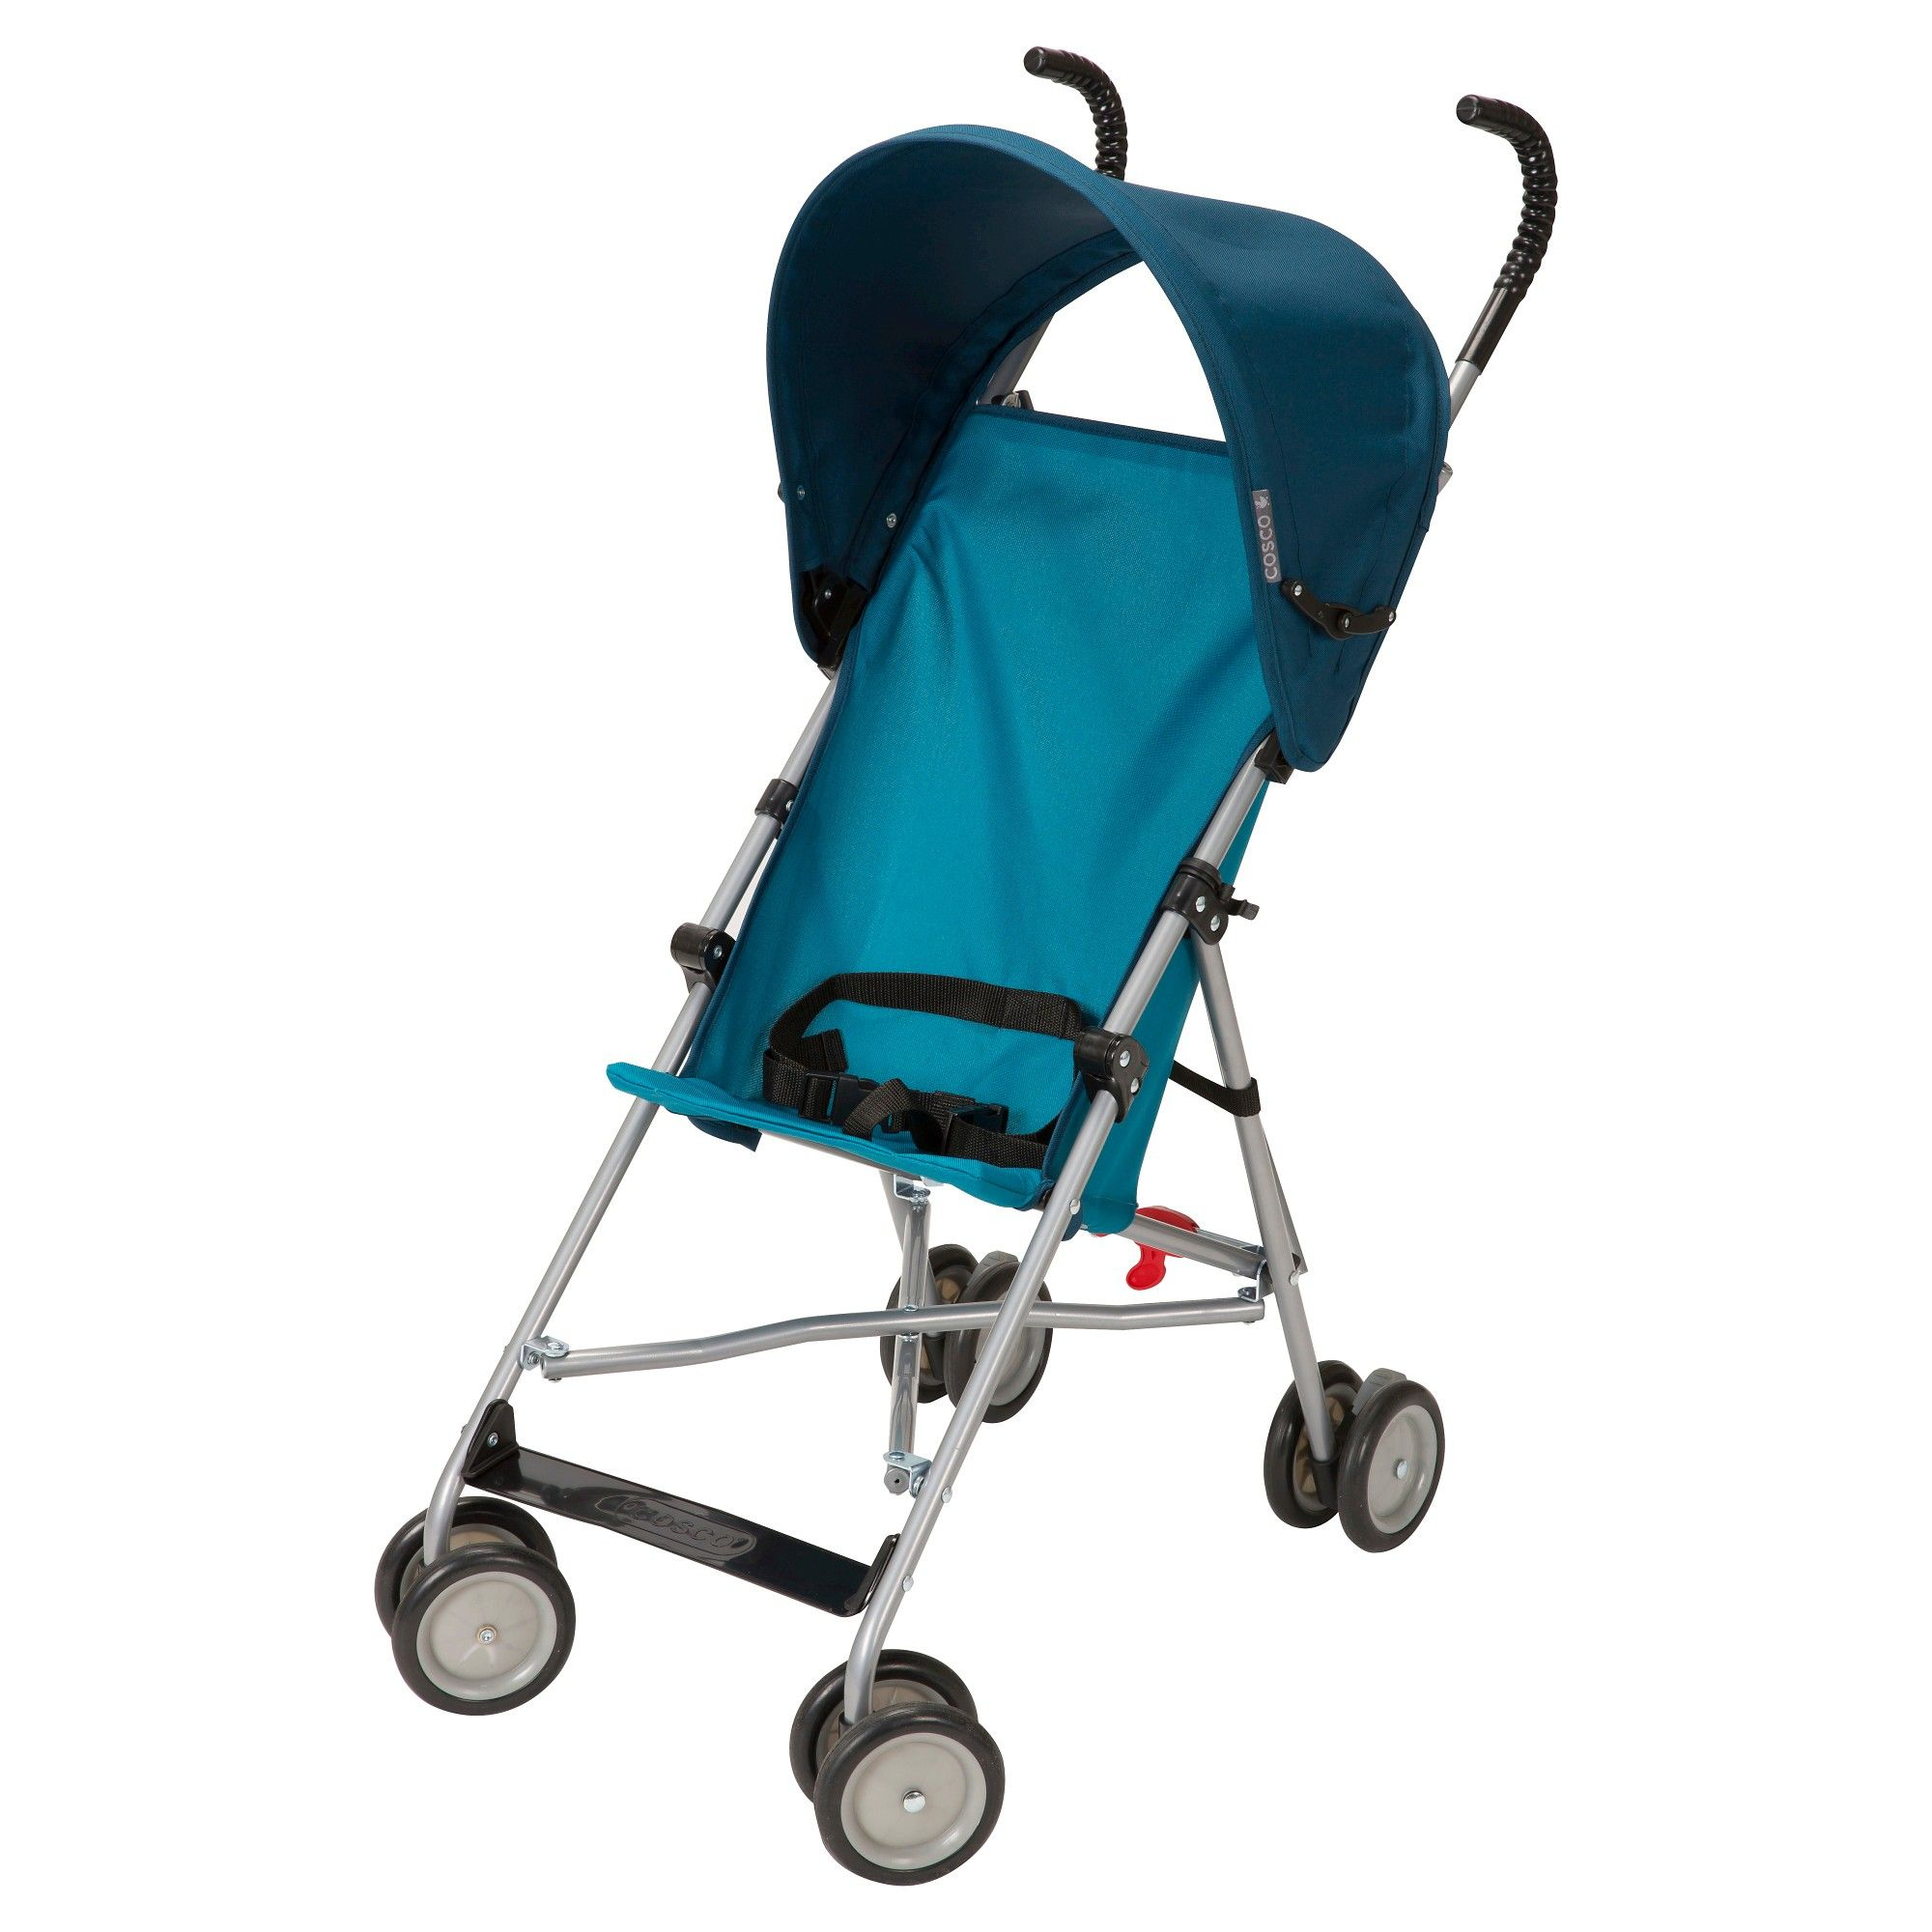 Cosco Umbrella Stroller with Canopy Blue